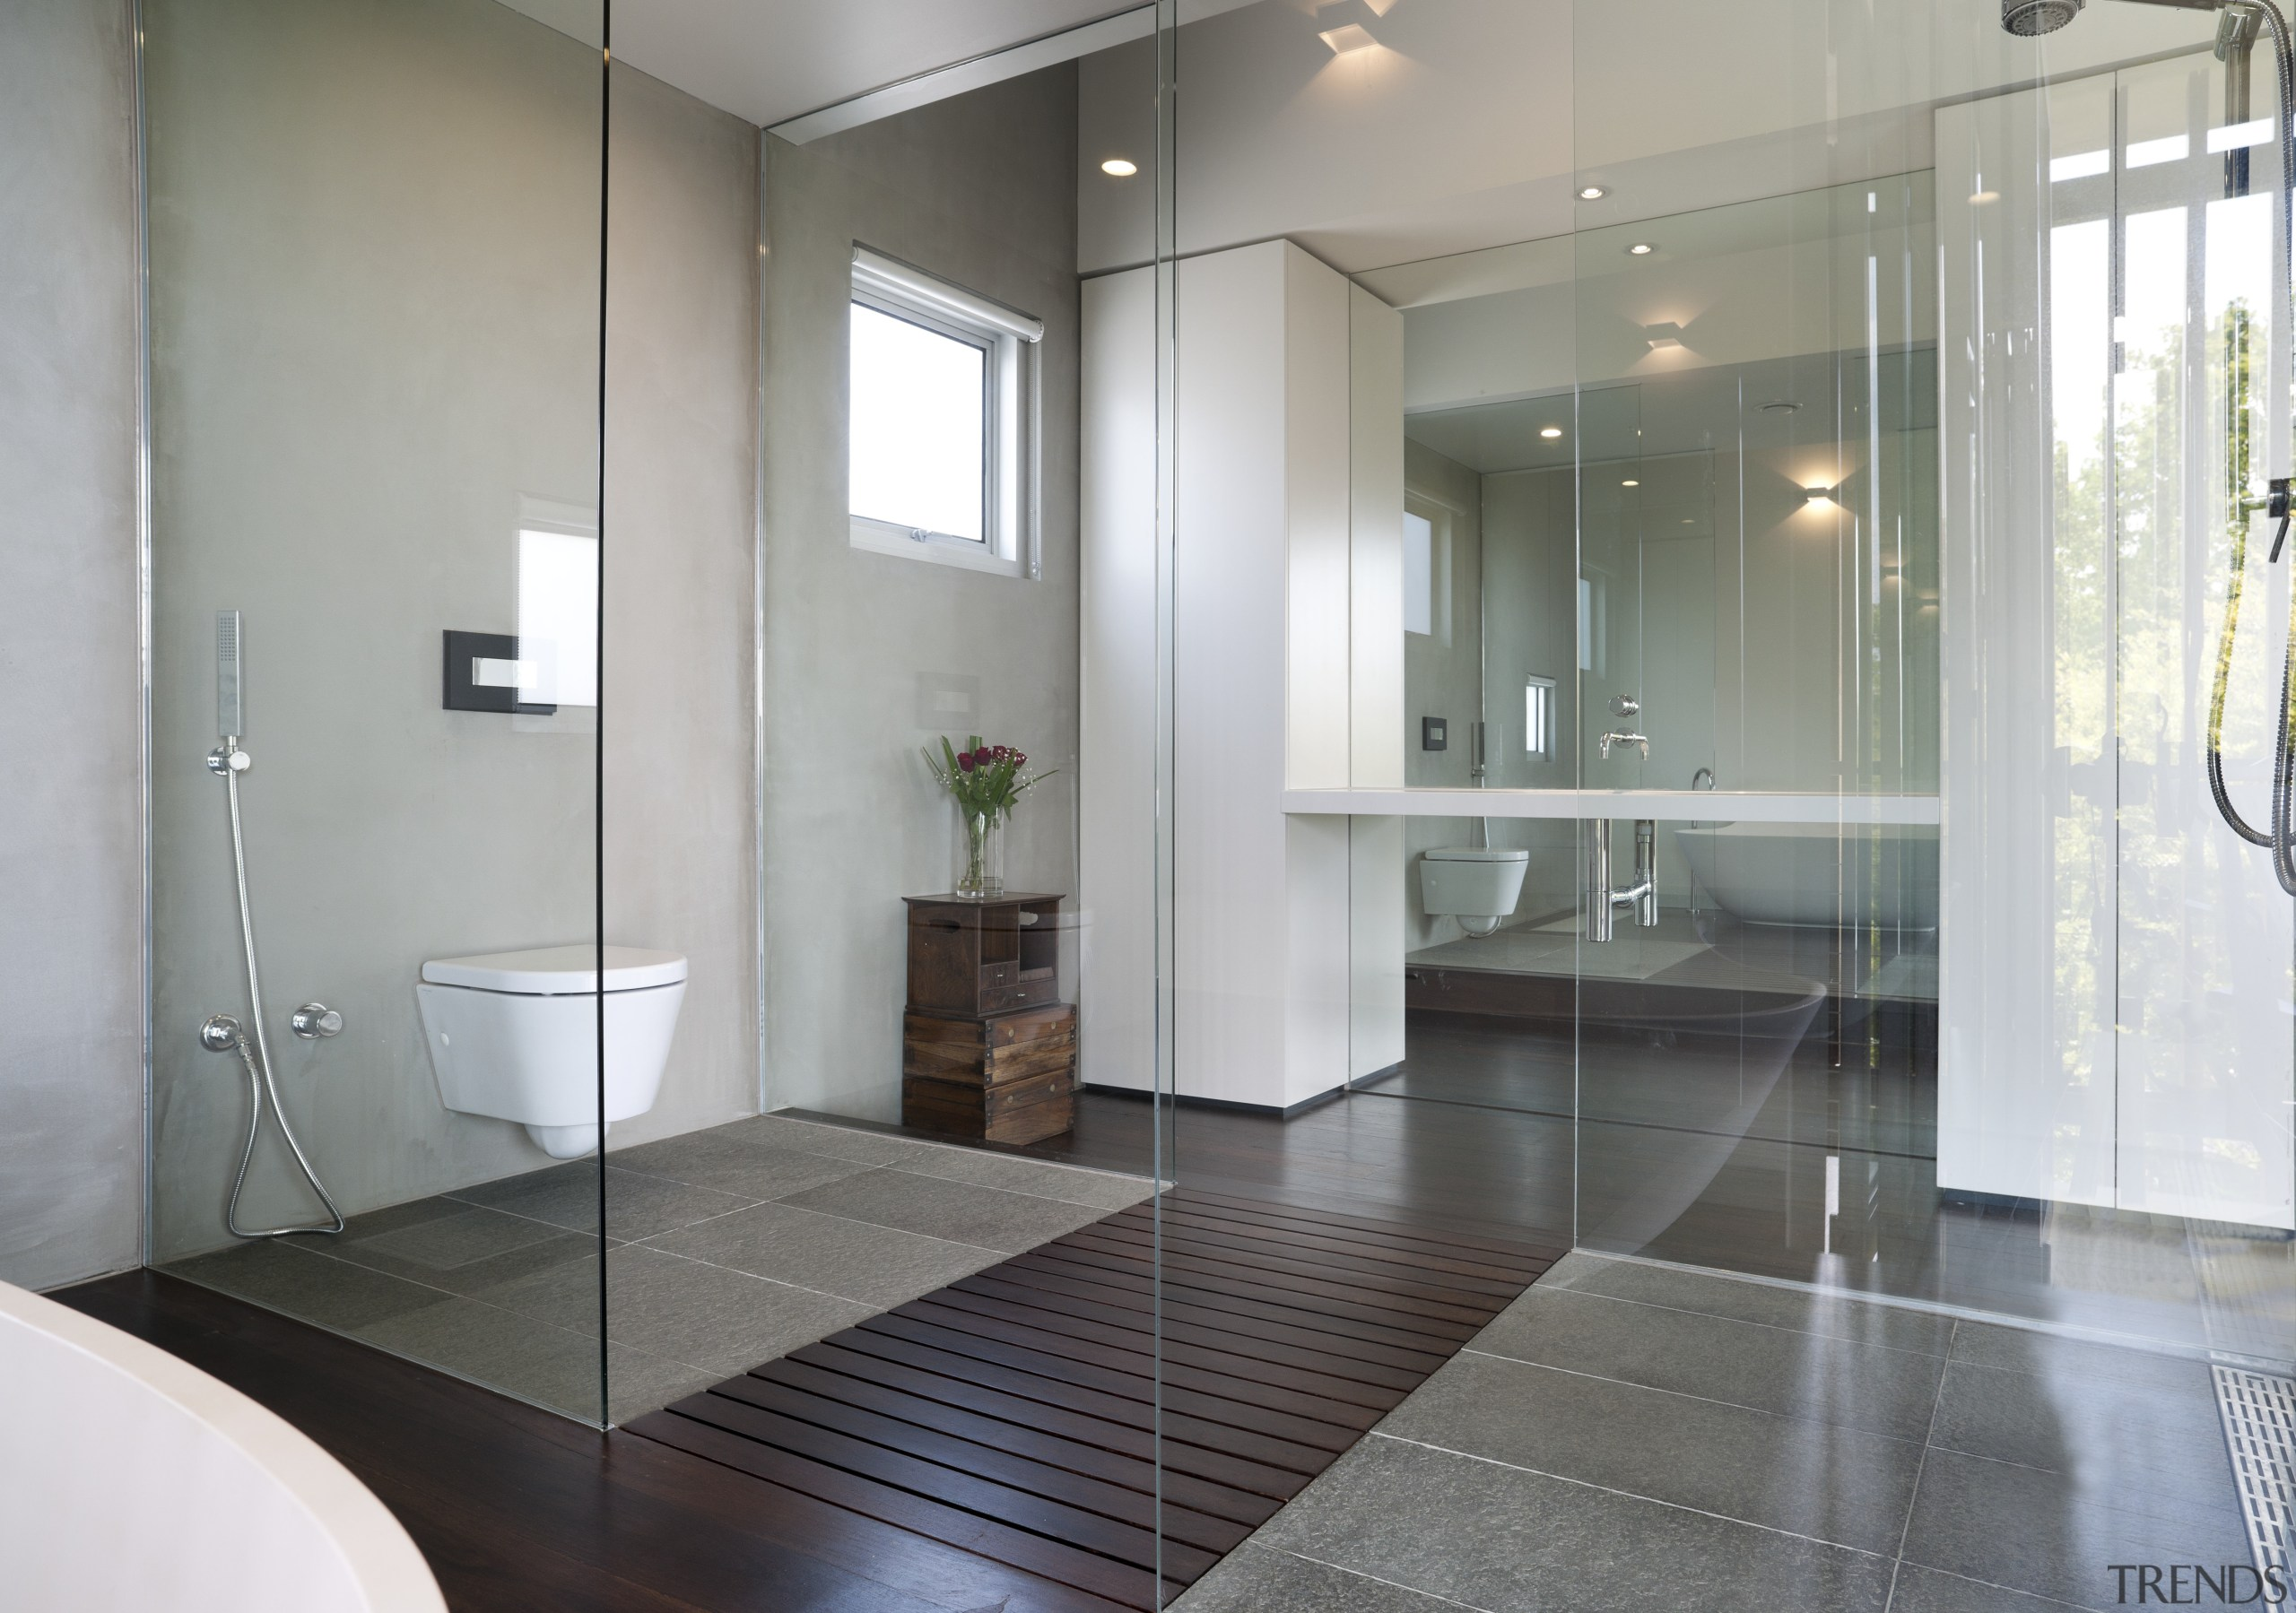 The toilet and shower in this contemporary master bathroom, floor, flooring, glass, interior design, property, real estate, room, sink, tile, wood flooring, gray